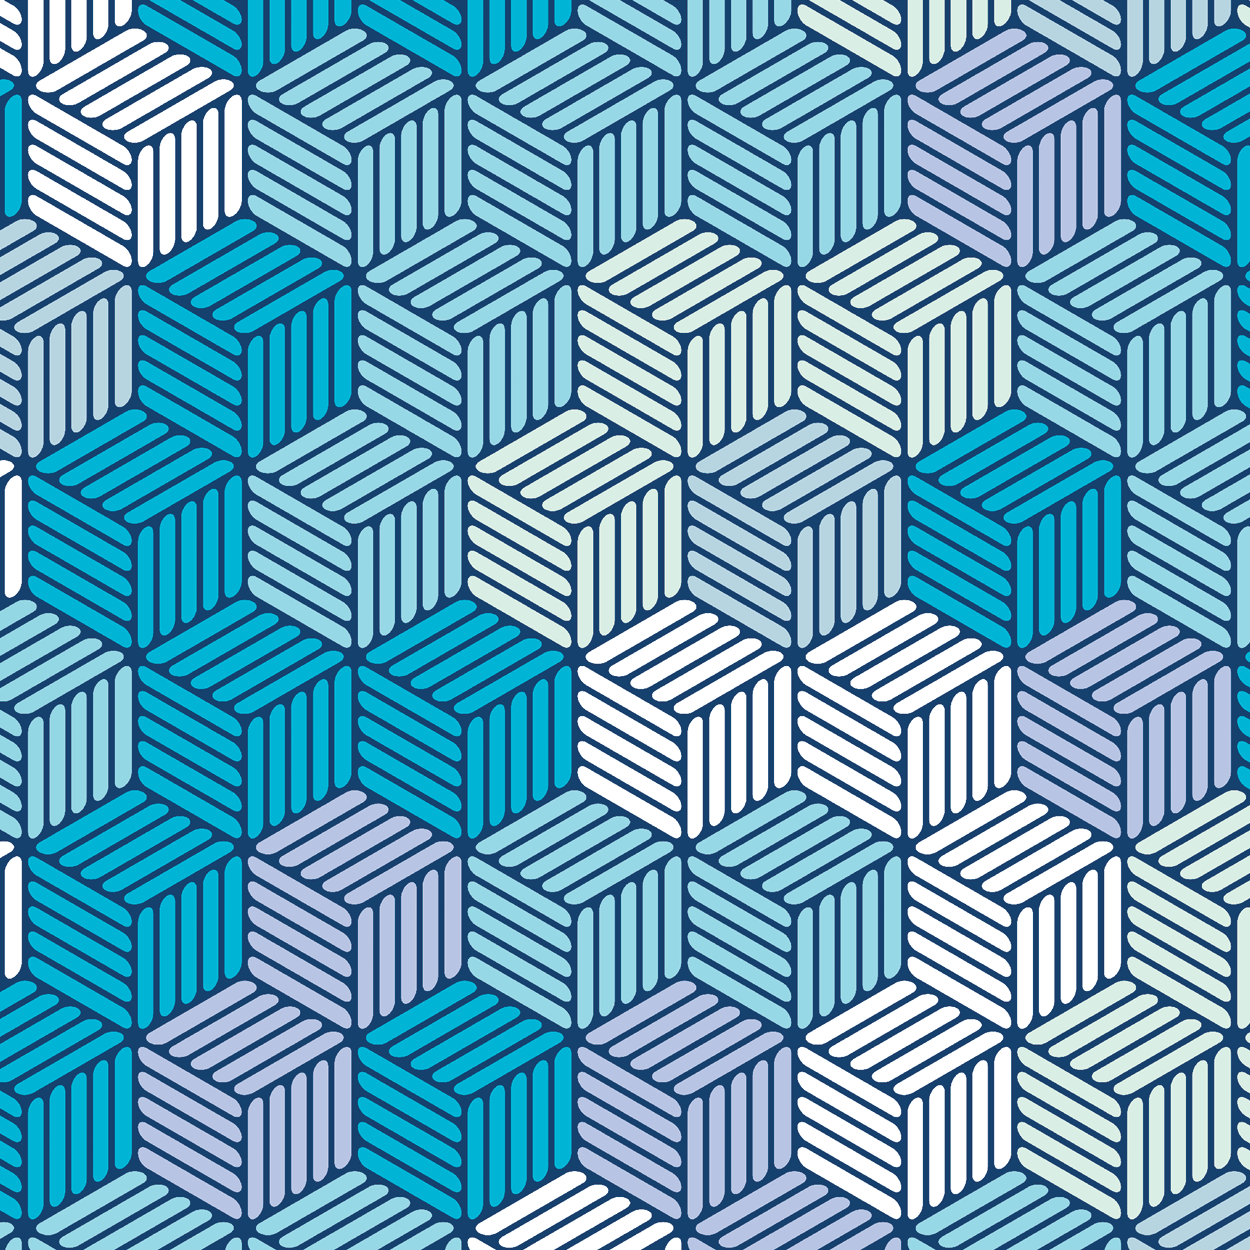 Isometric Hashed Cube 8